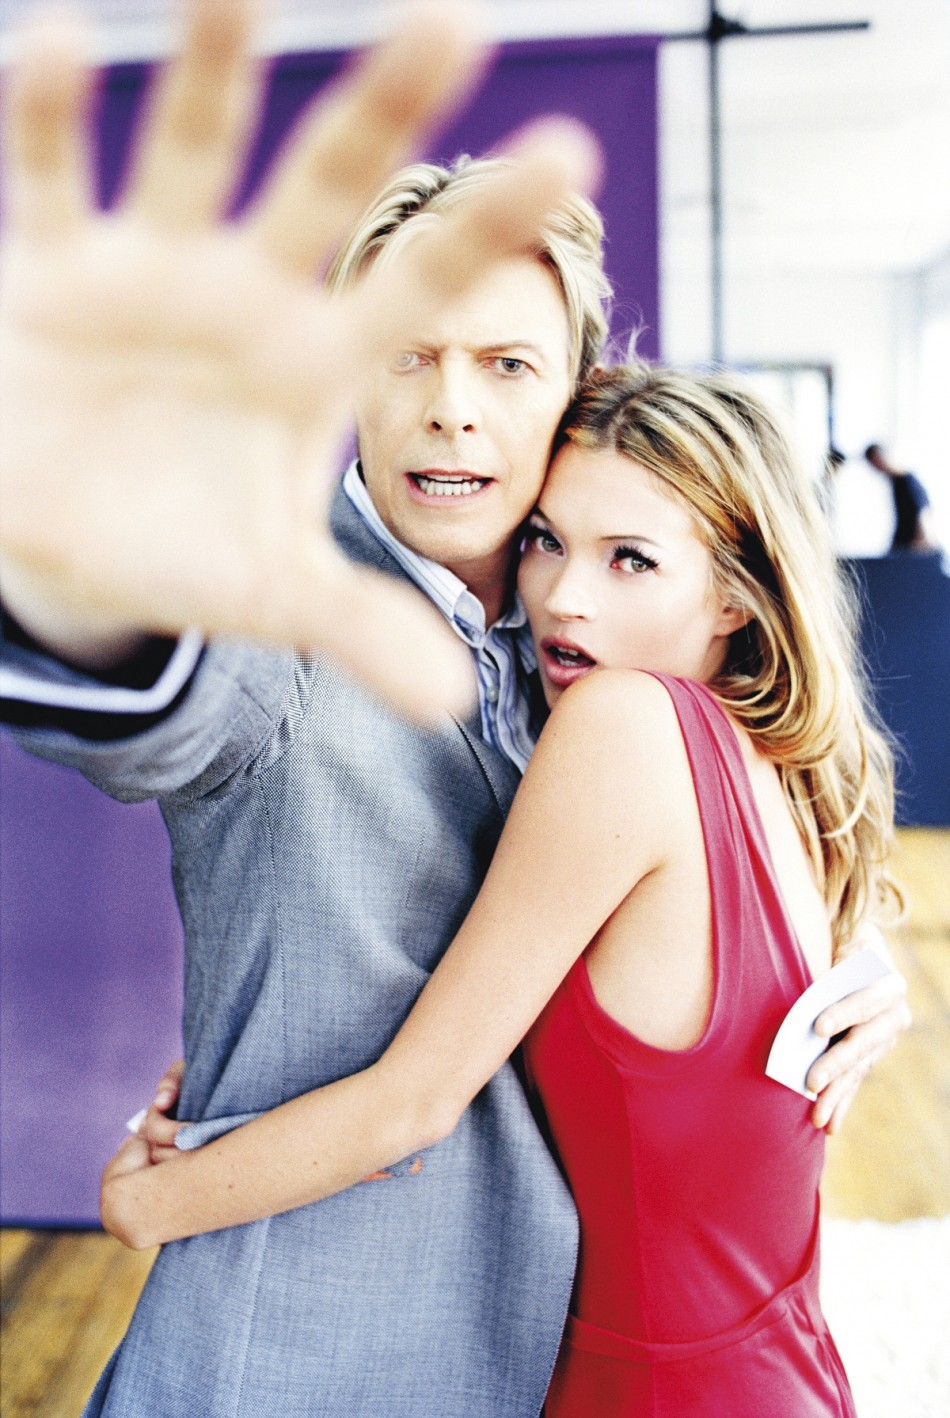 David Bowie & Kate Moss, for Q Magazine, October 2003